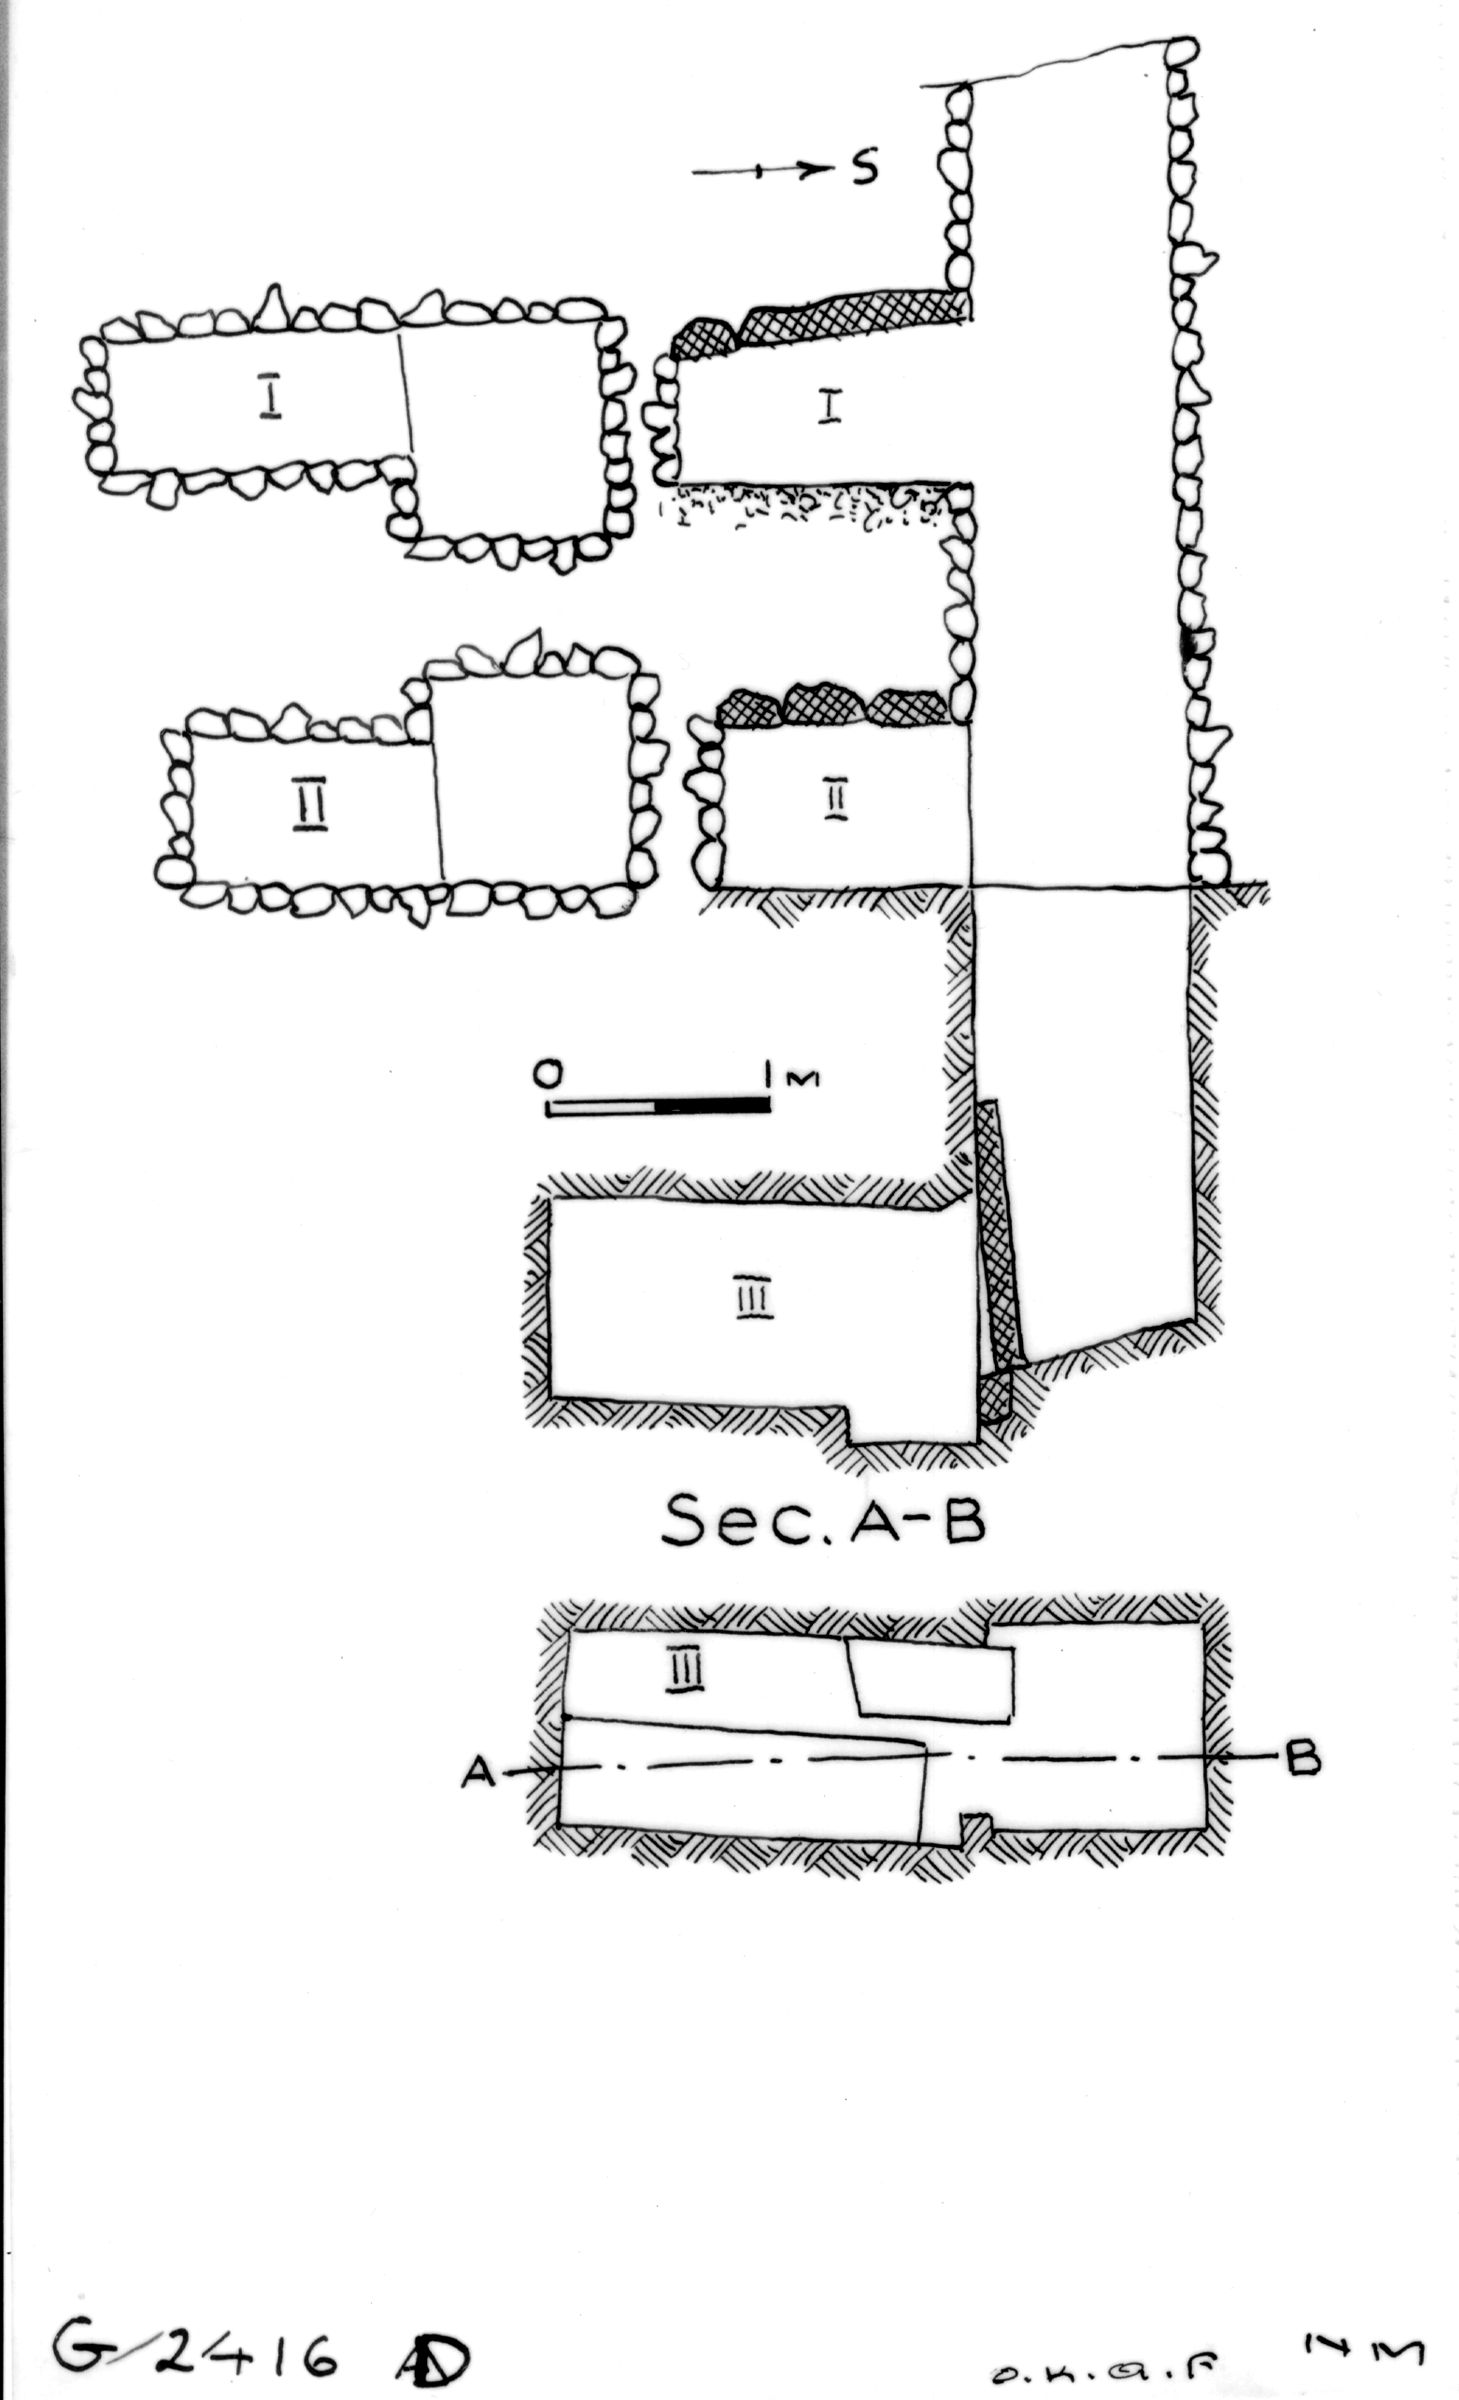 Maps and plans: G 2416, Shaft D